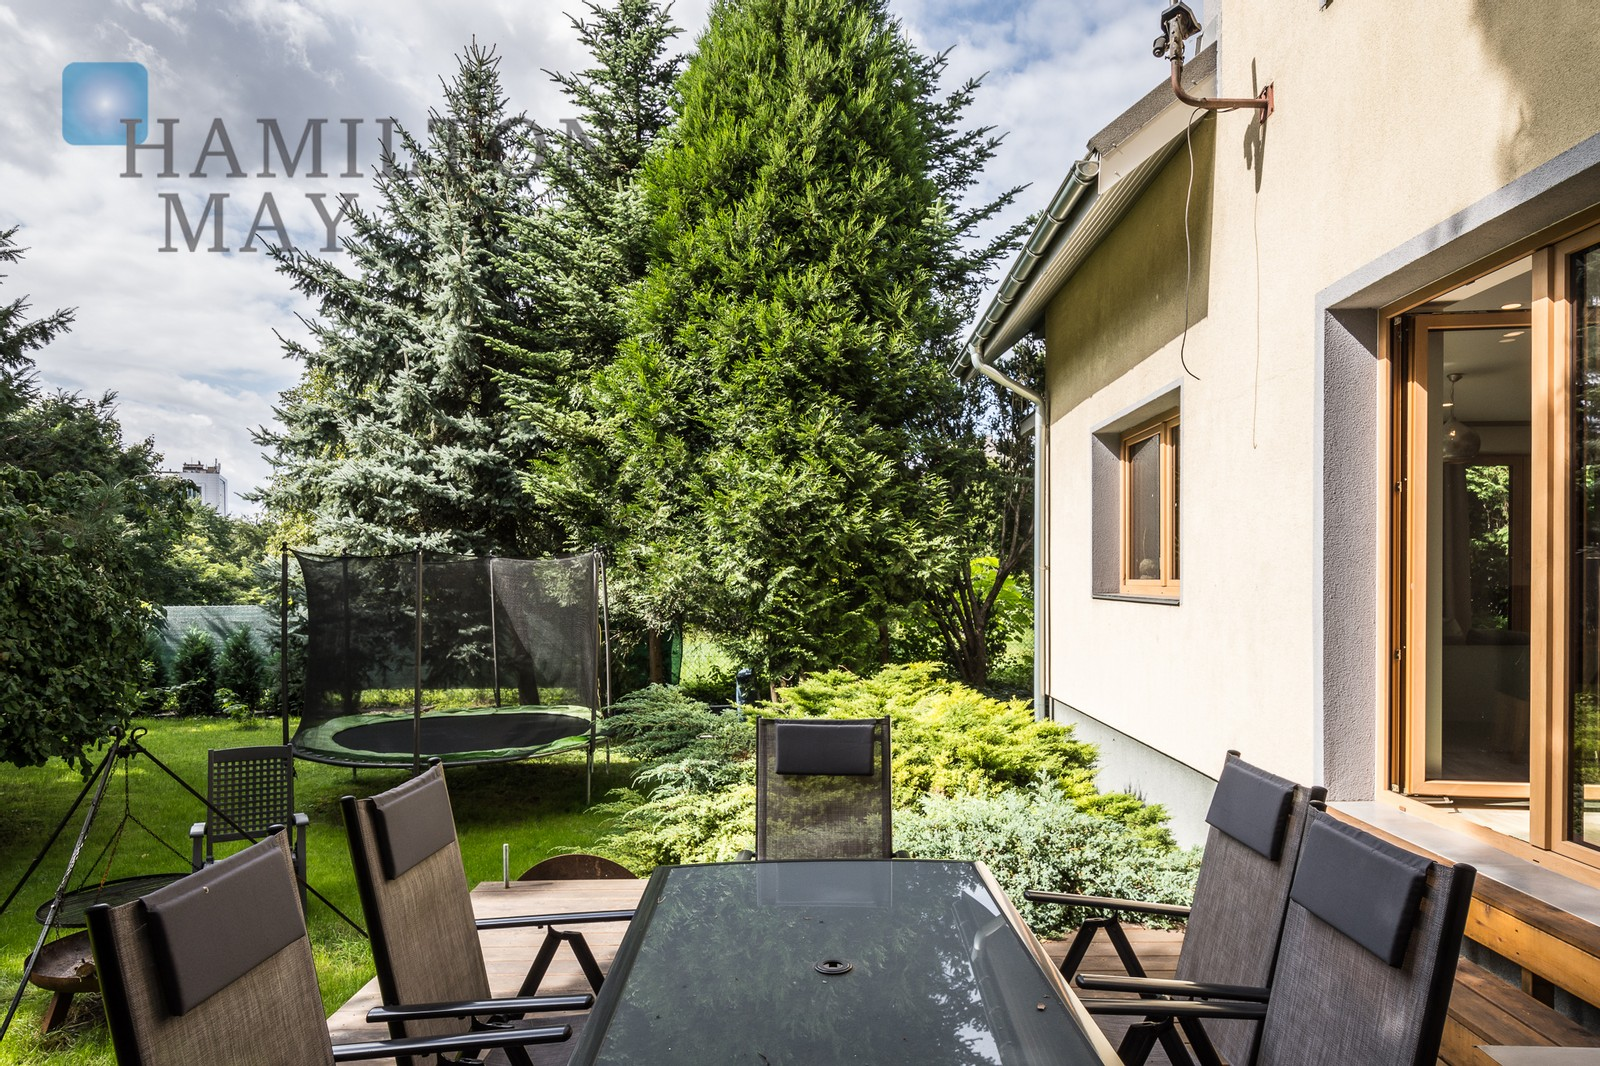 A spacious house with a large garden in the Olsza neighborhood Krakow for rent